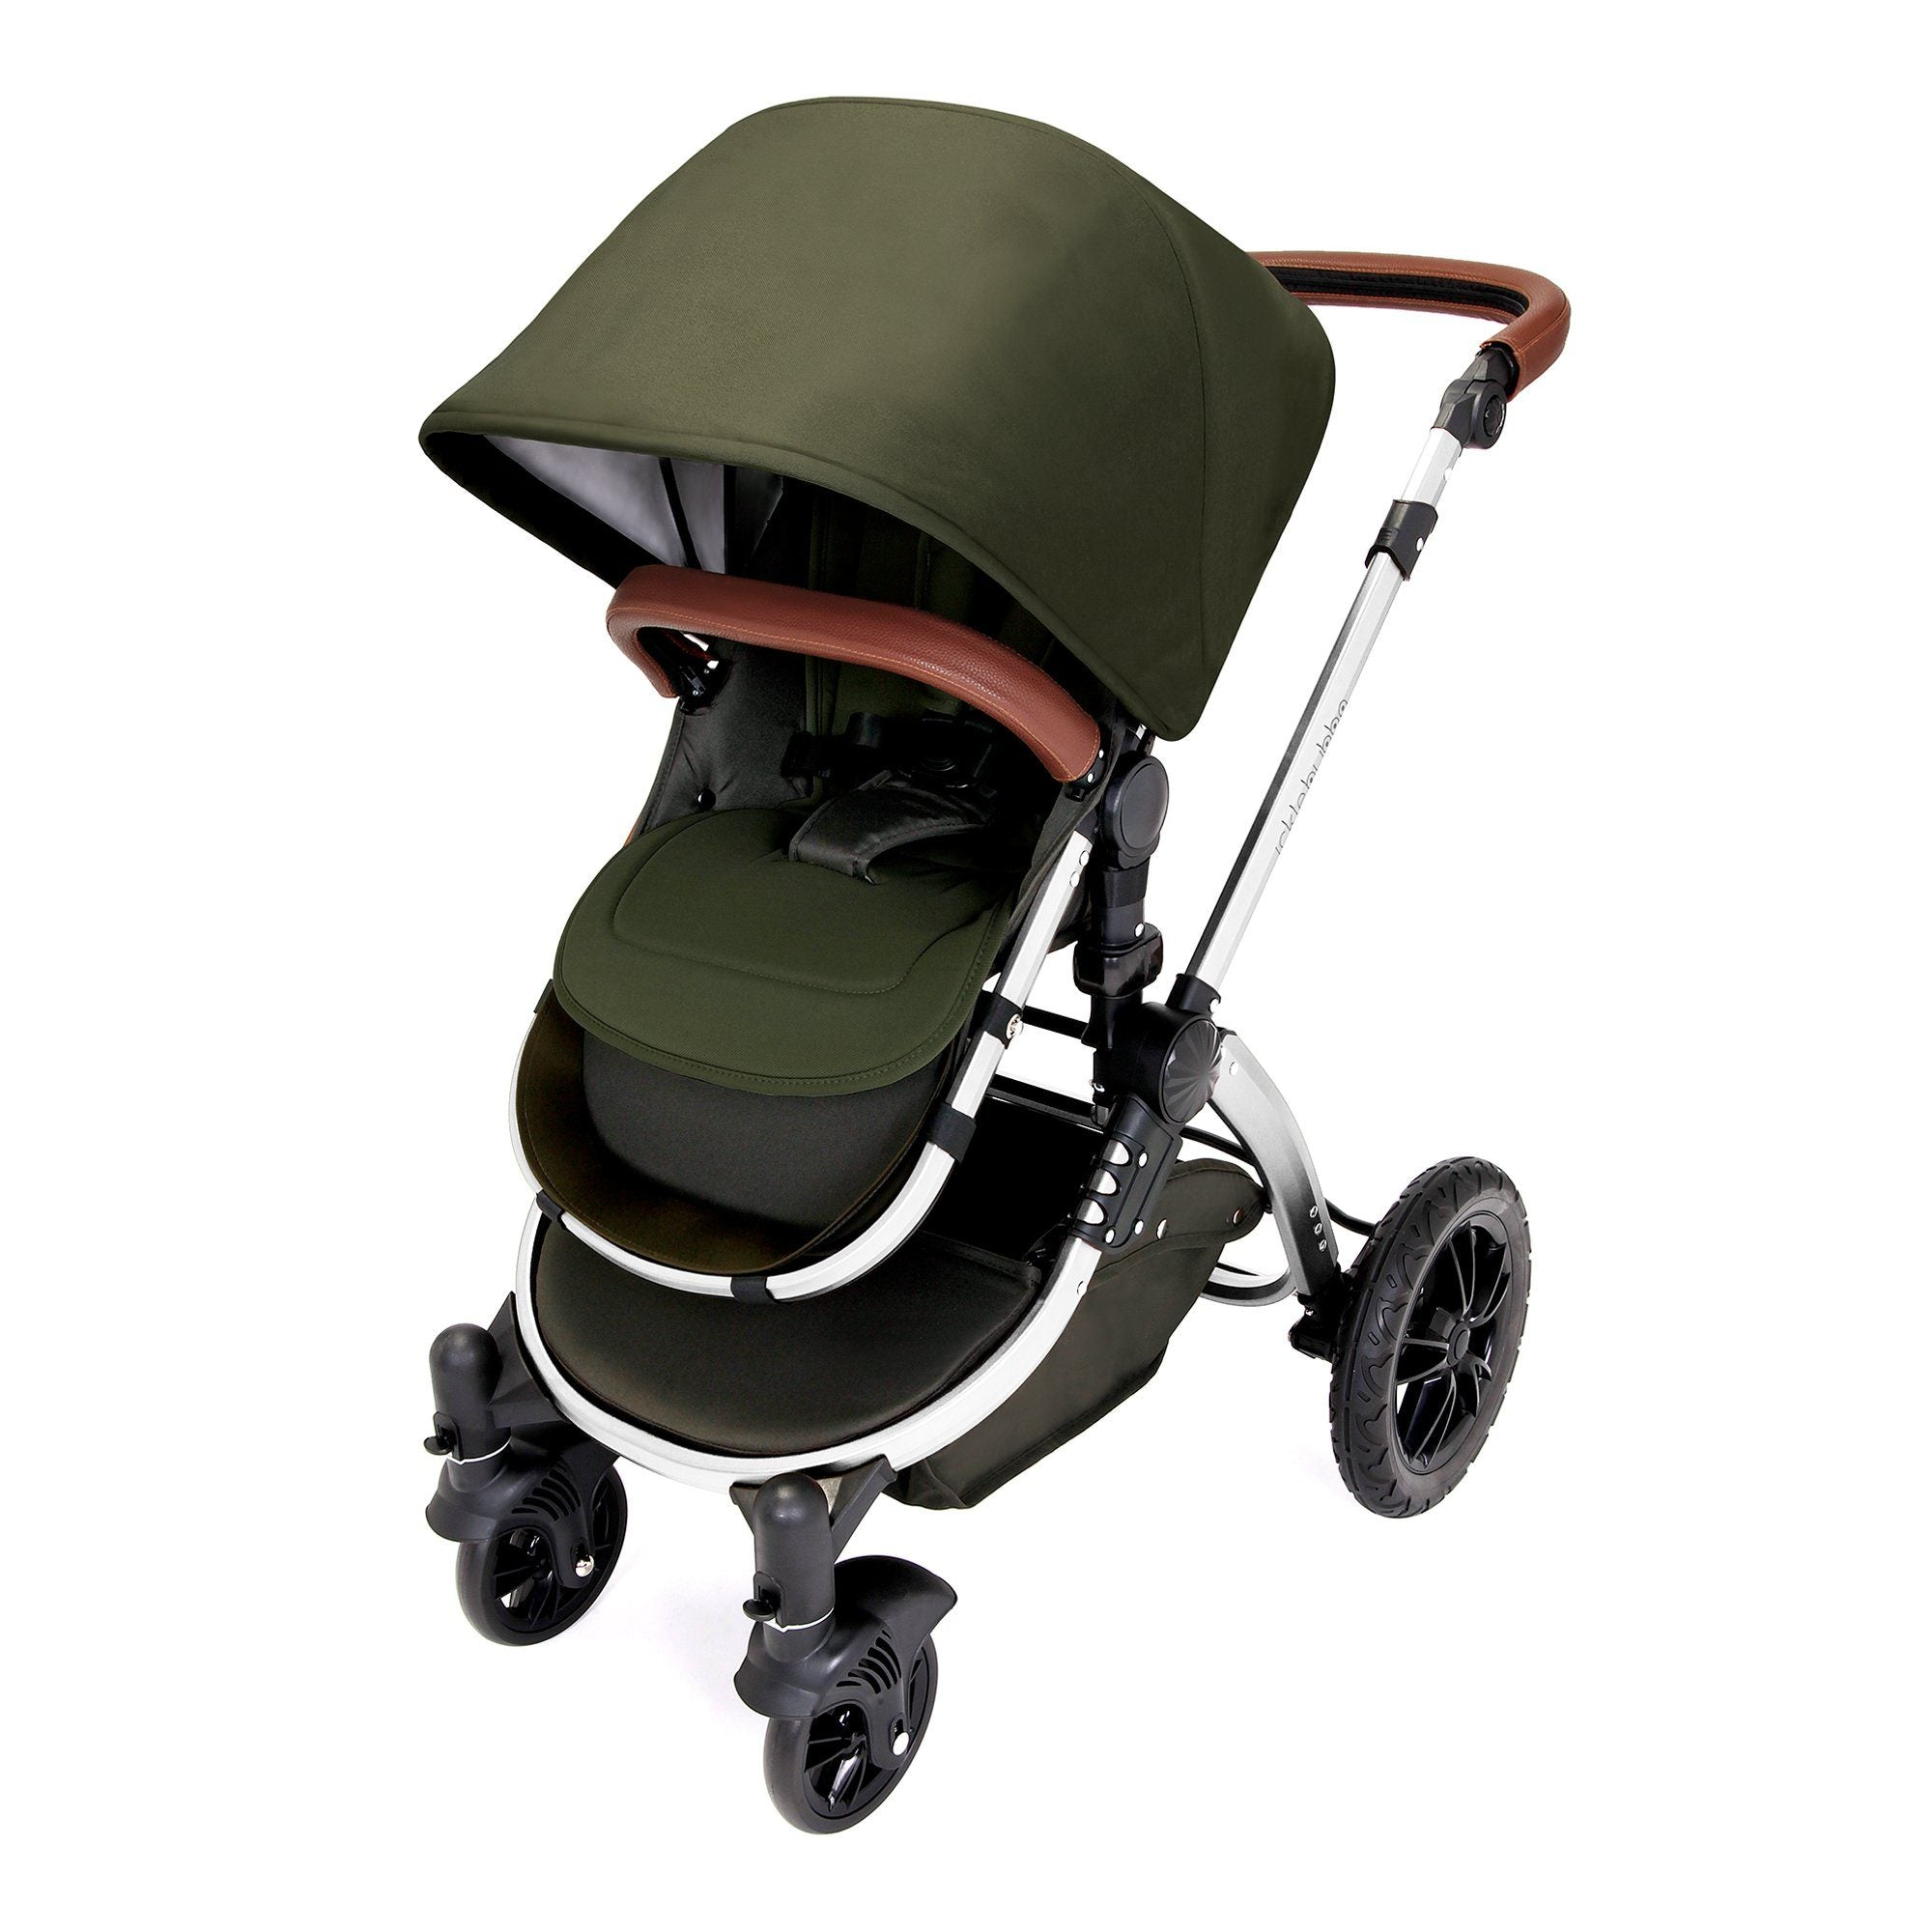 Ickle Bubba Stomp V4 Special Edition Travel System with ISOFIX Base - Woodland/Chrome - Pushchair Expert